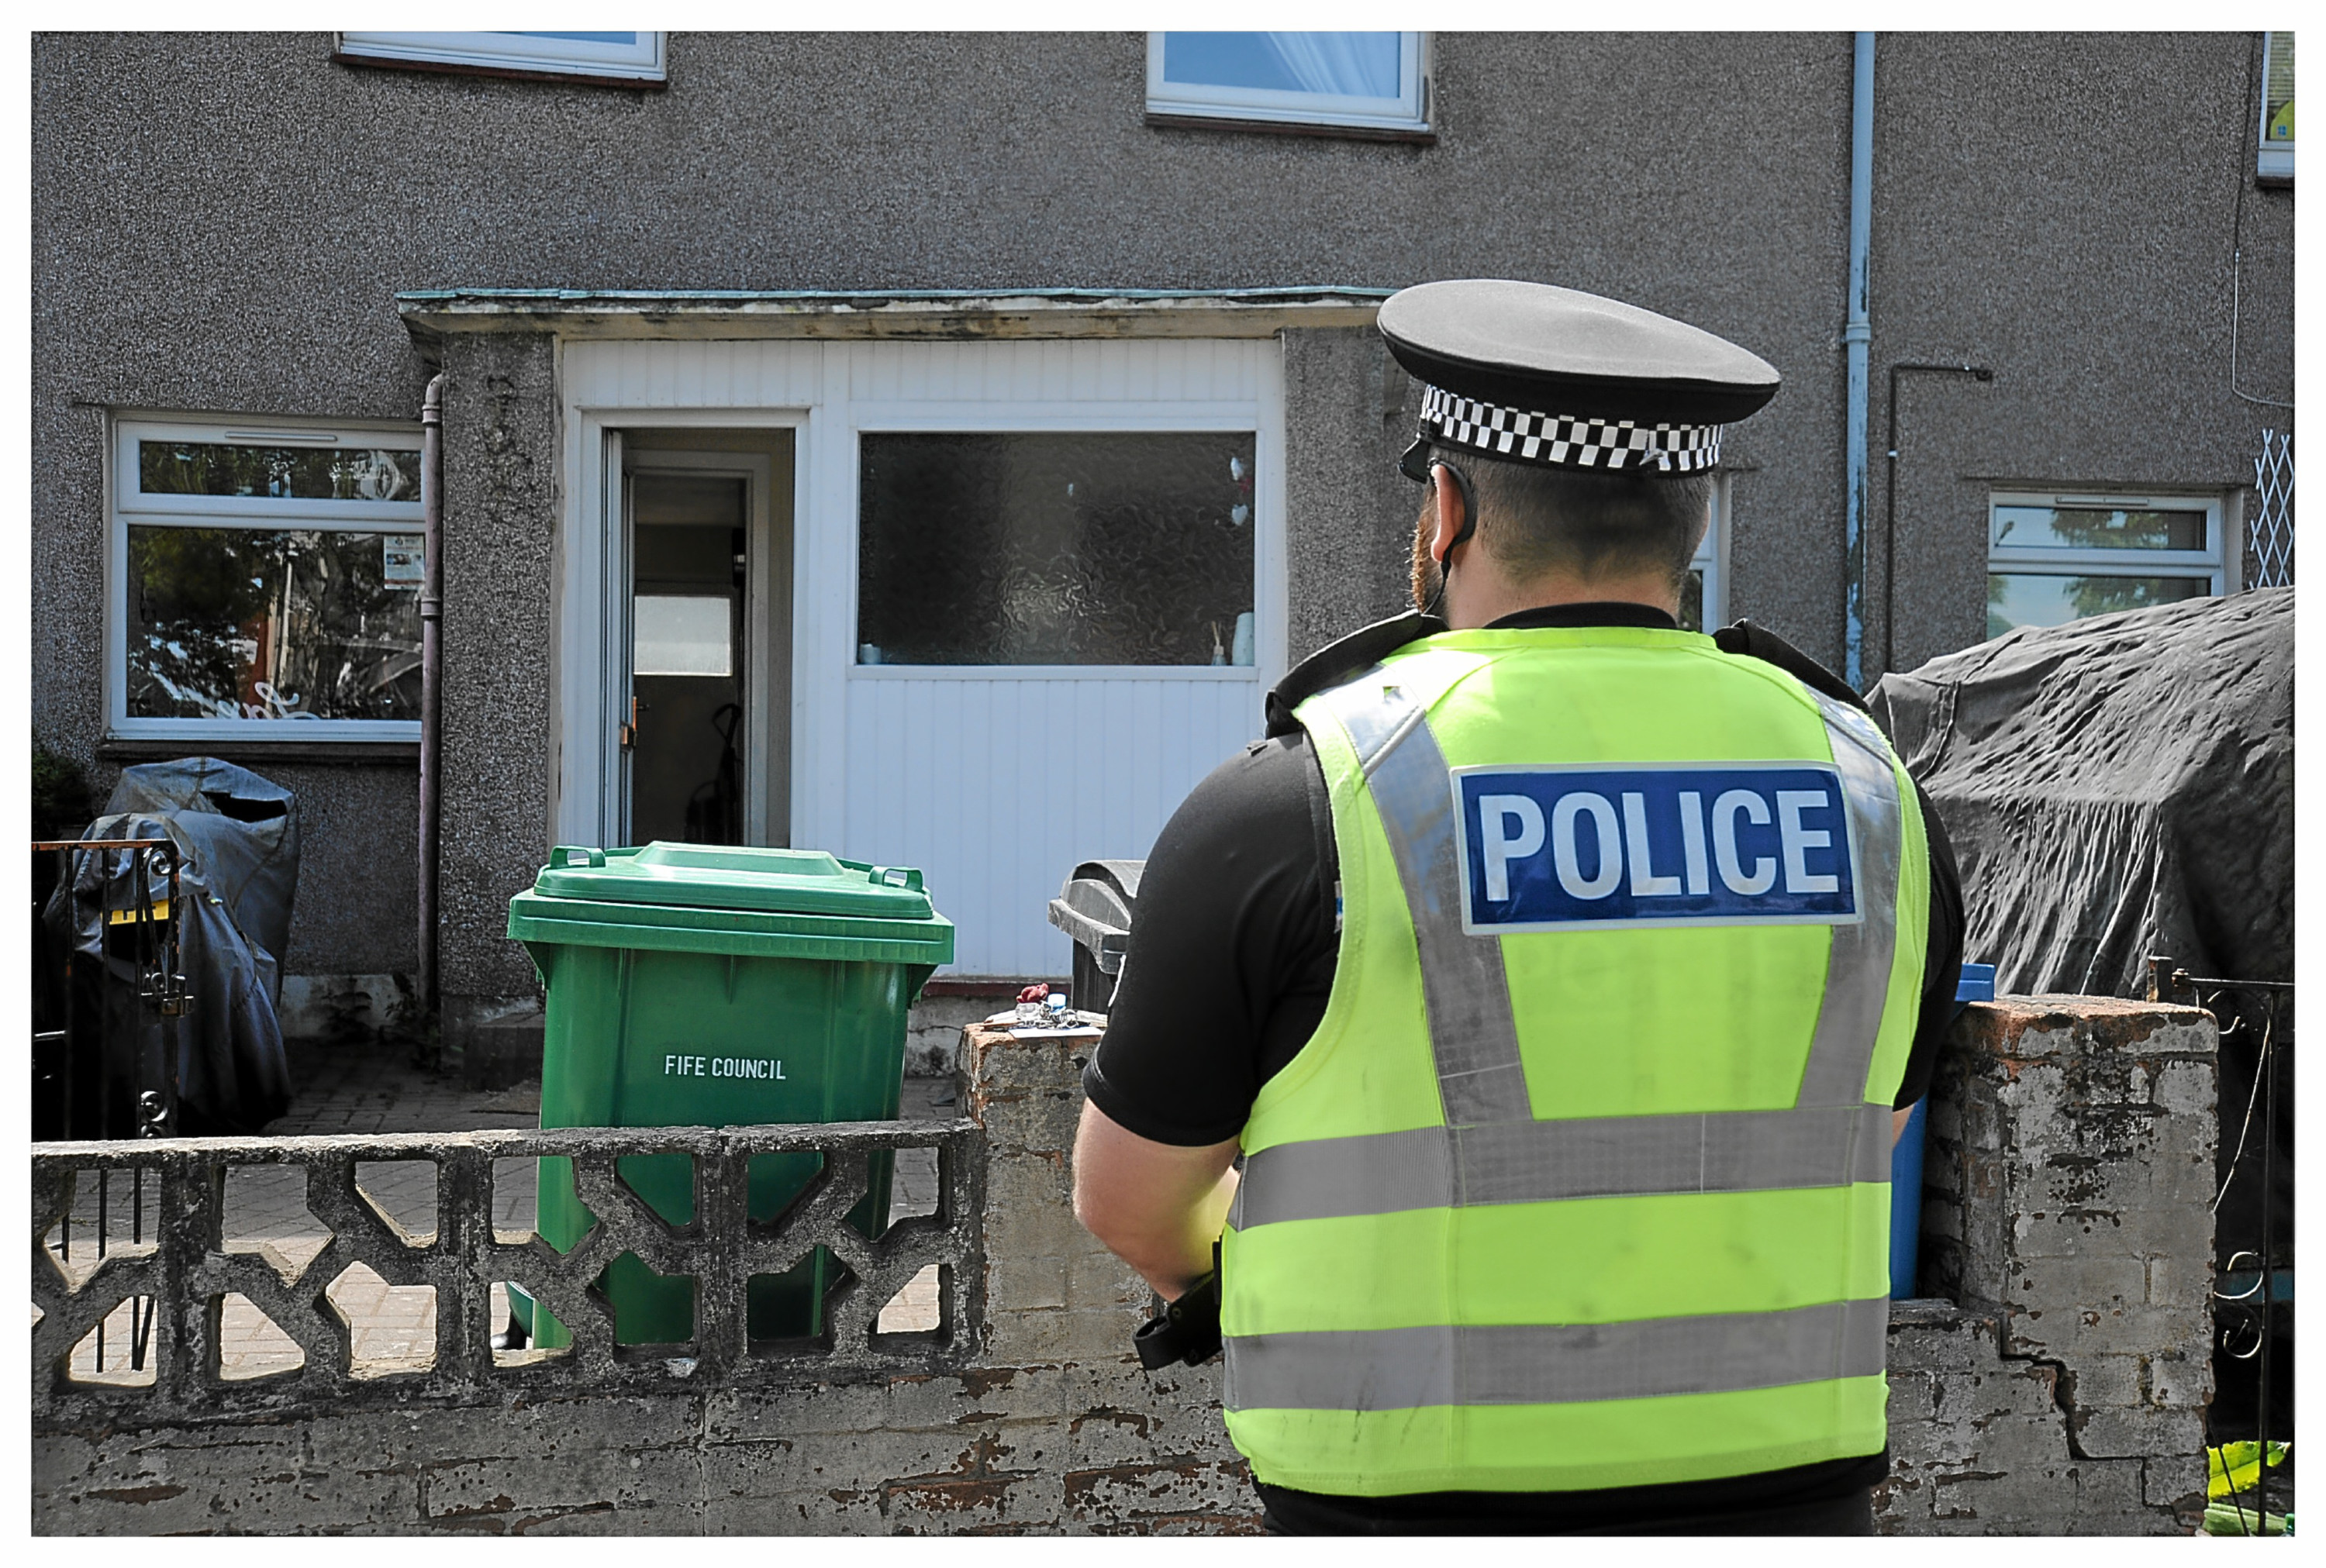 Police have stepped up patrols in Auchmuty